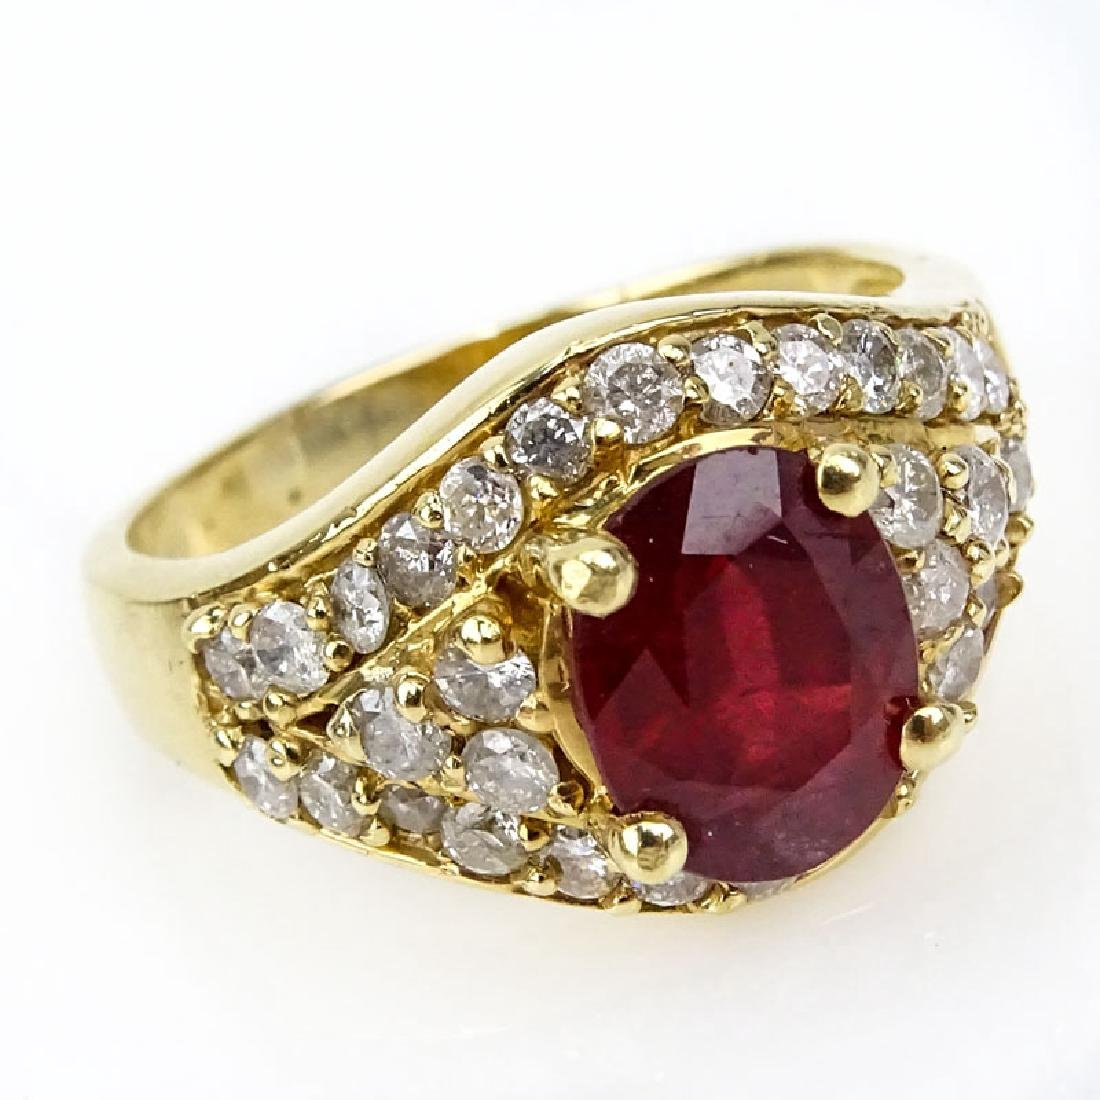 Vintage Oval Cut Ruby, Diamond and 14 Karat Yellow Gold